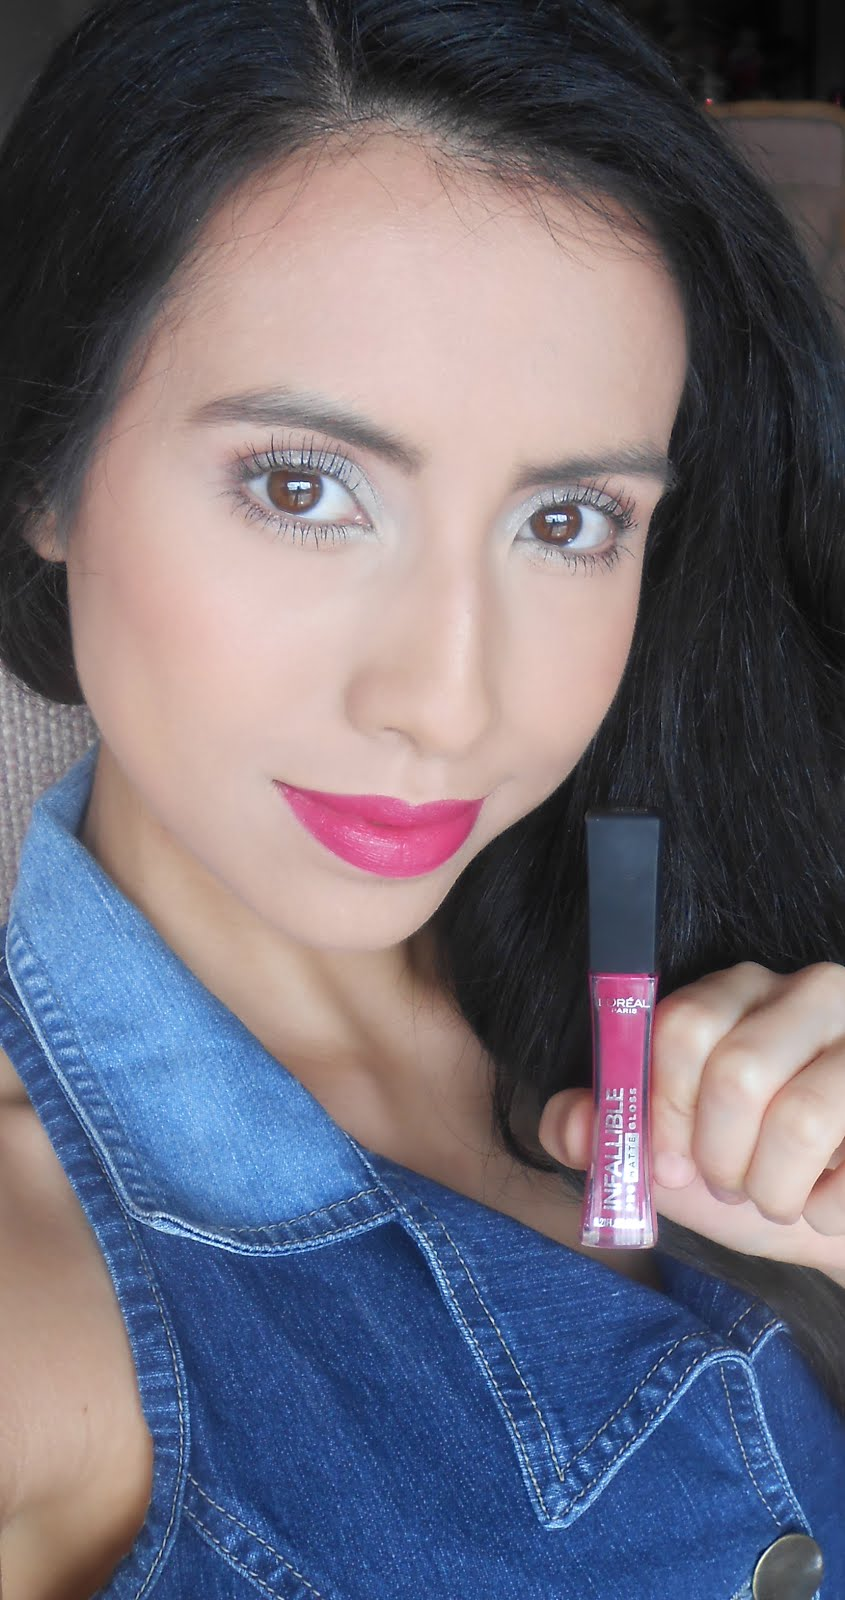 My Opinion And More: ........ L'oreal Paris Makeup Recent